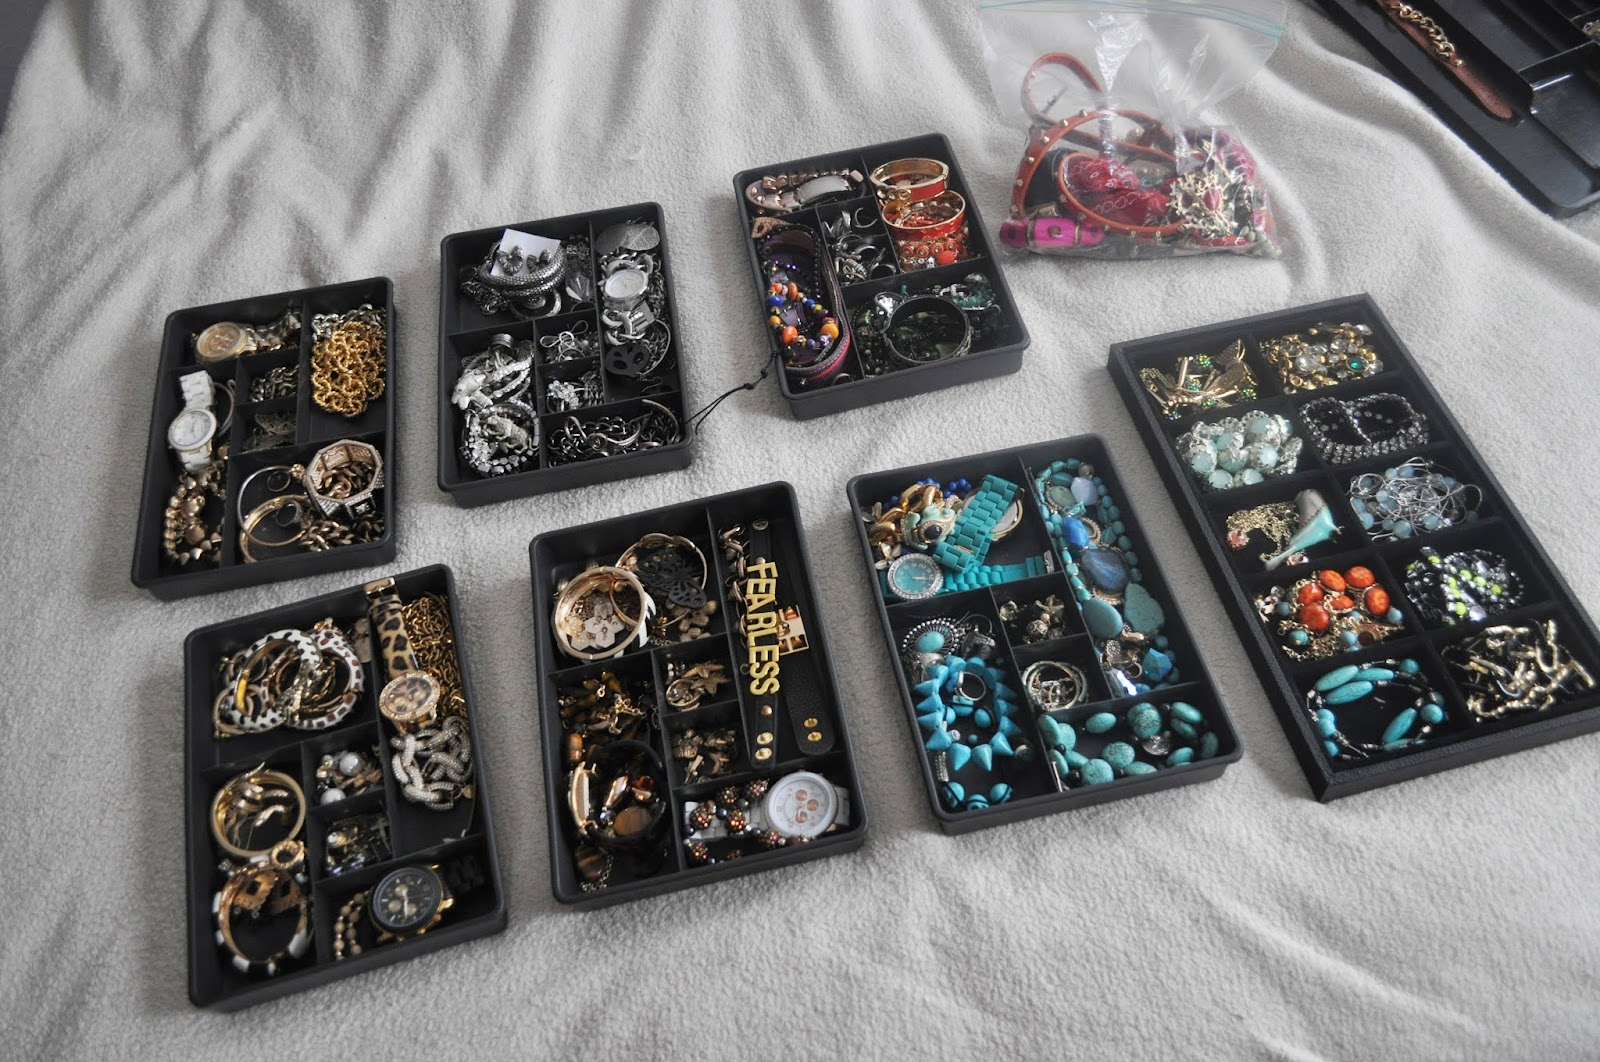 Blog ust day 16 moving cross country jewelry packing for How to pack jewelry for moving